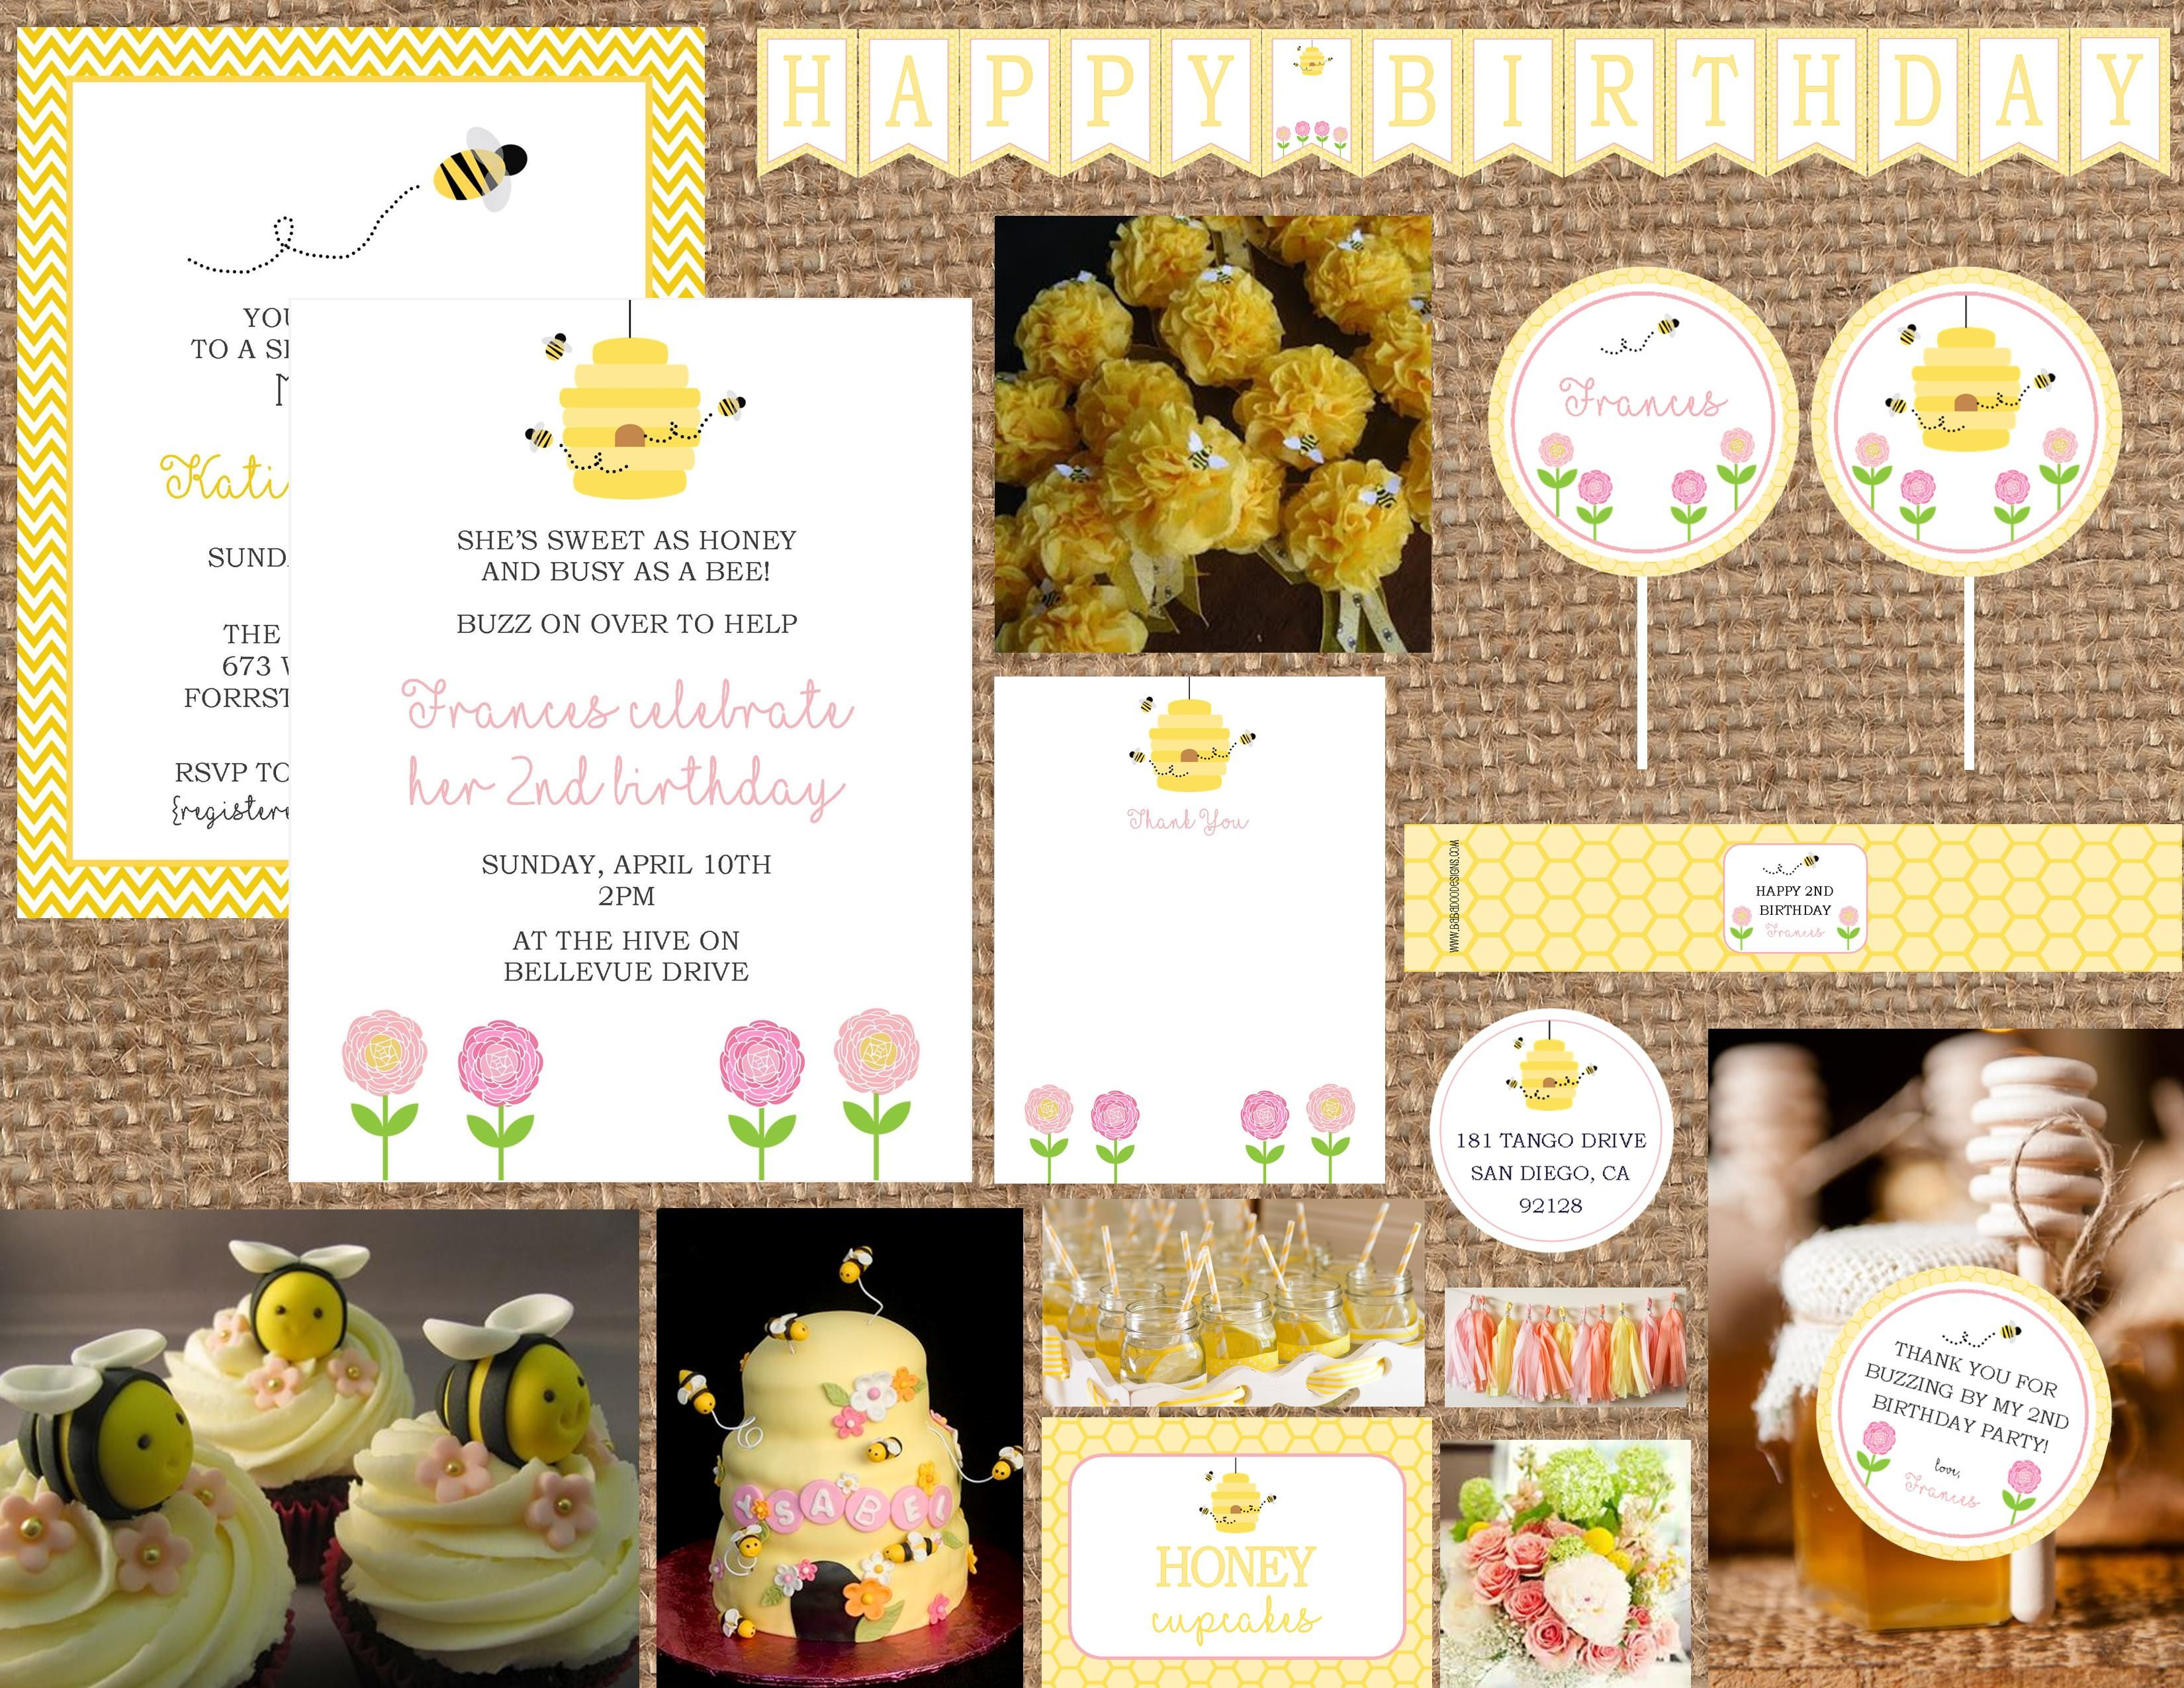 Bee + Flowers, Pink Flowers, Garden Party, Yellow and Pink, Light Pink, Bee Hive, Bee Good: https://www.etsy.com/listing/176992292/honey-bee-flowers-bee-good-birthday-baby?ref=listing-shop-header-1